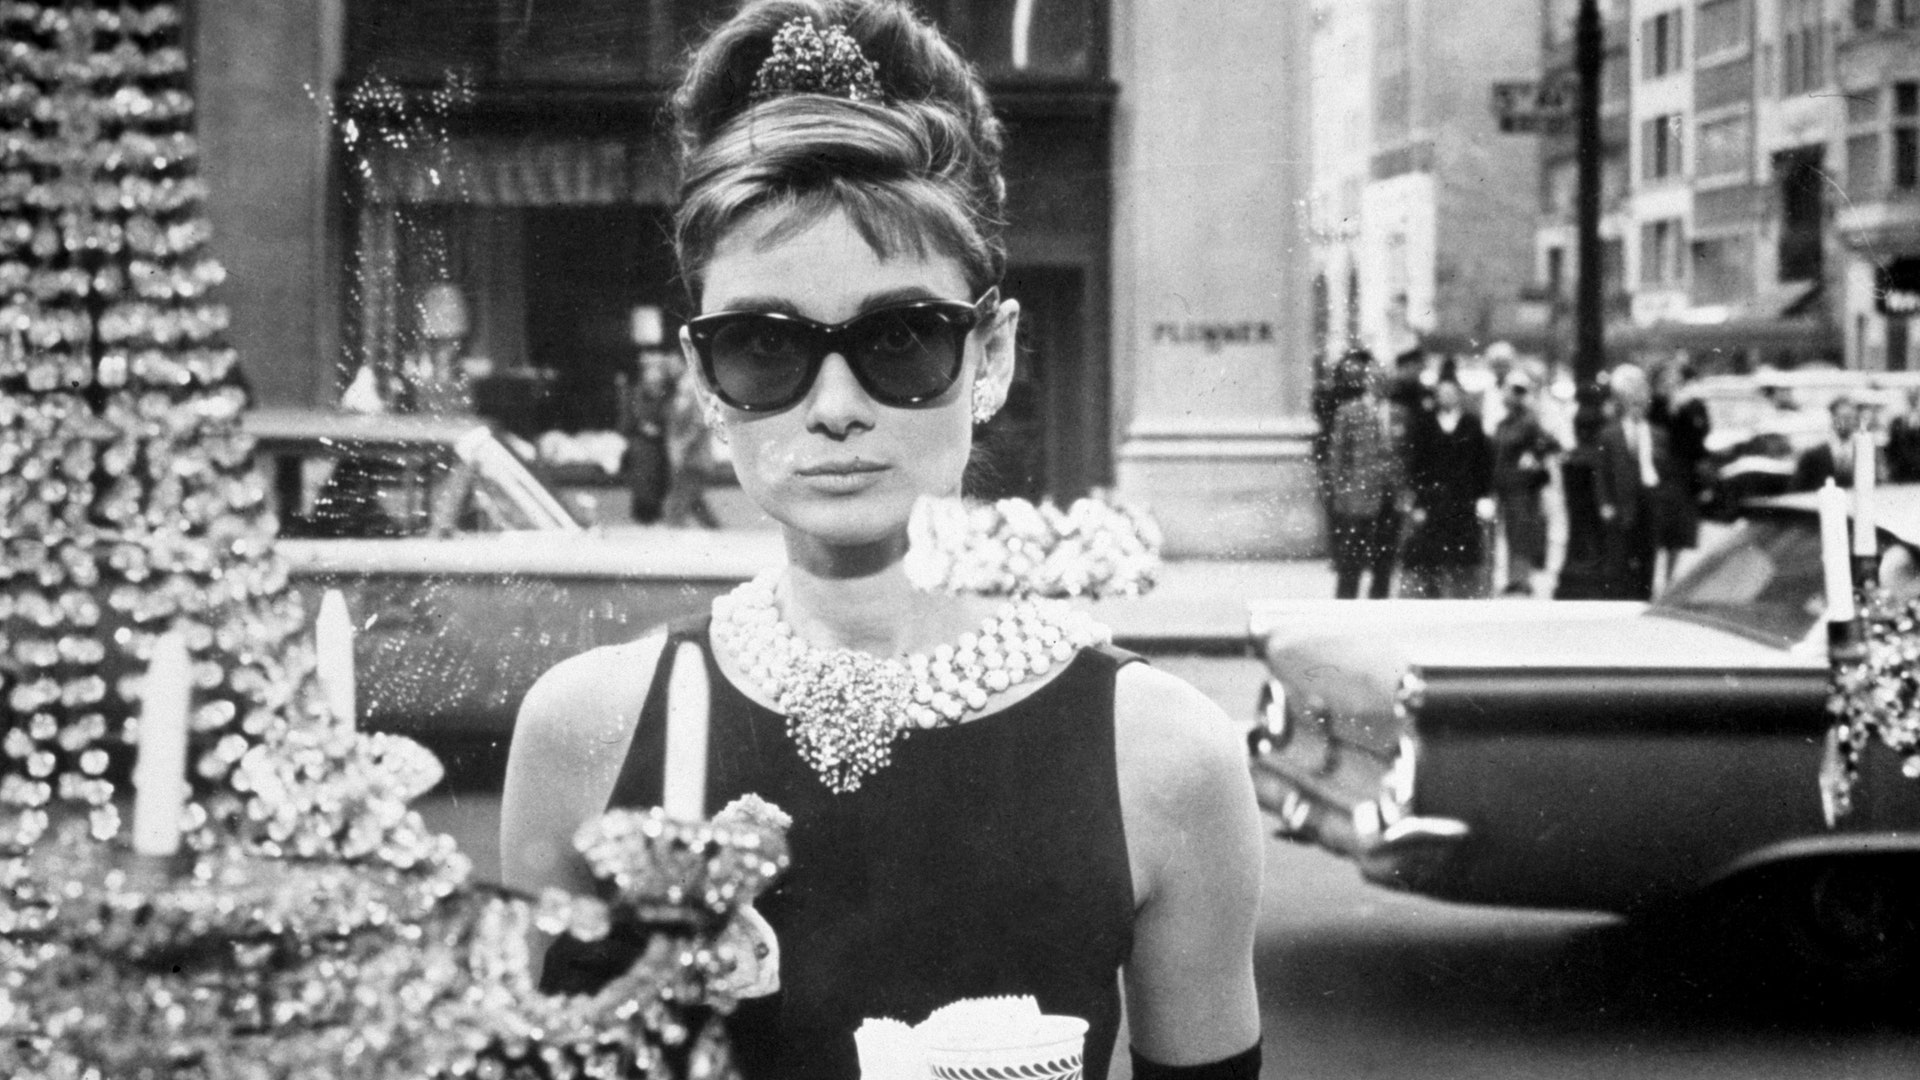 Audrey Hepburn: 5 things you don't know about Breakfast at Tiffany's